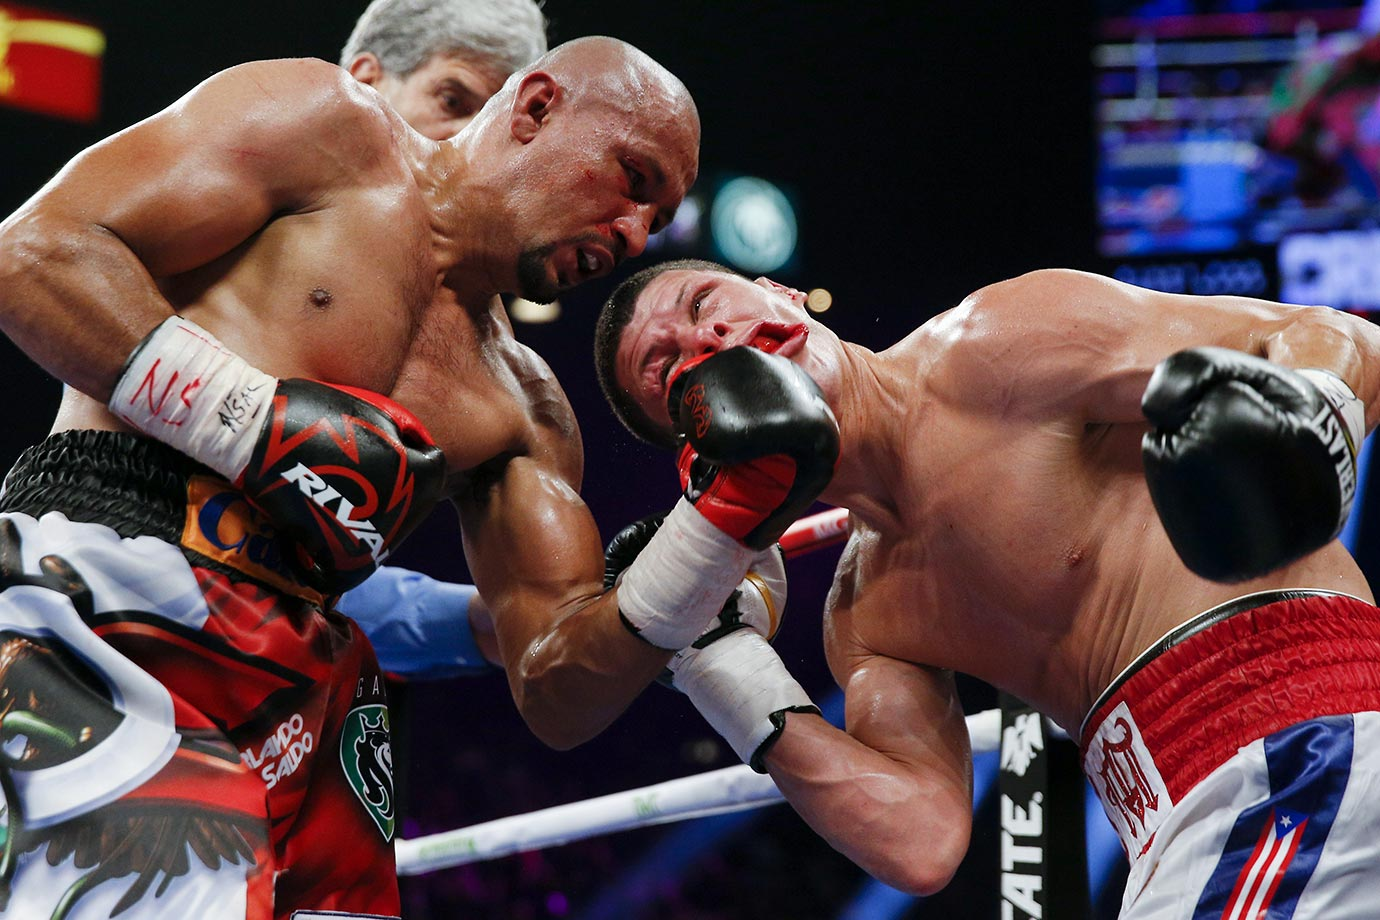 Orlando Salido punches Roman Martinez during their junior lightweight title boxing bout in Las Vegas.